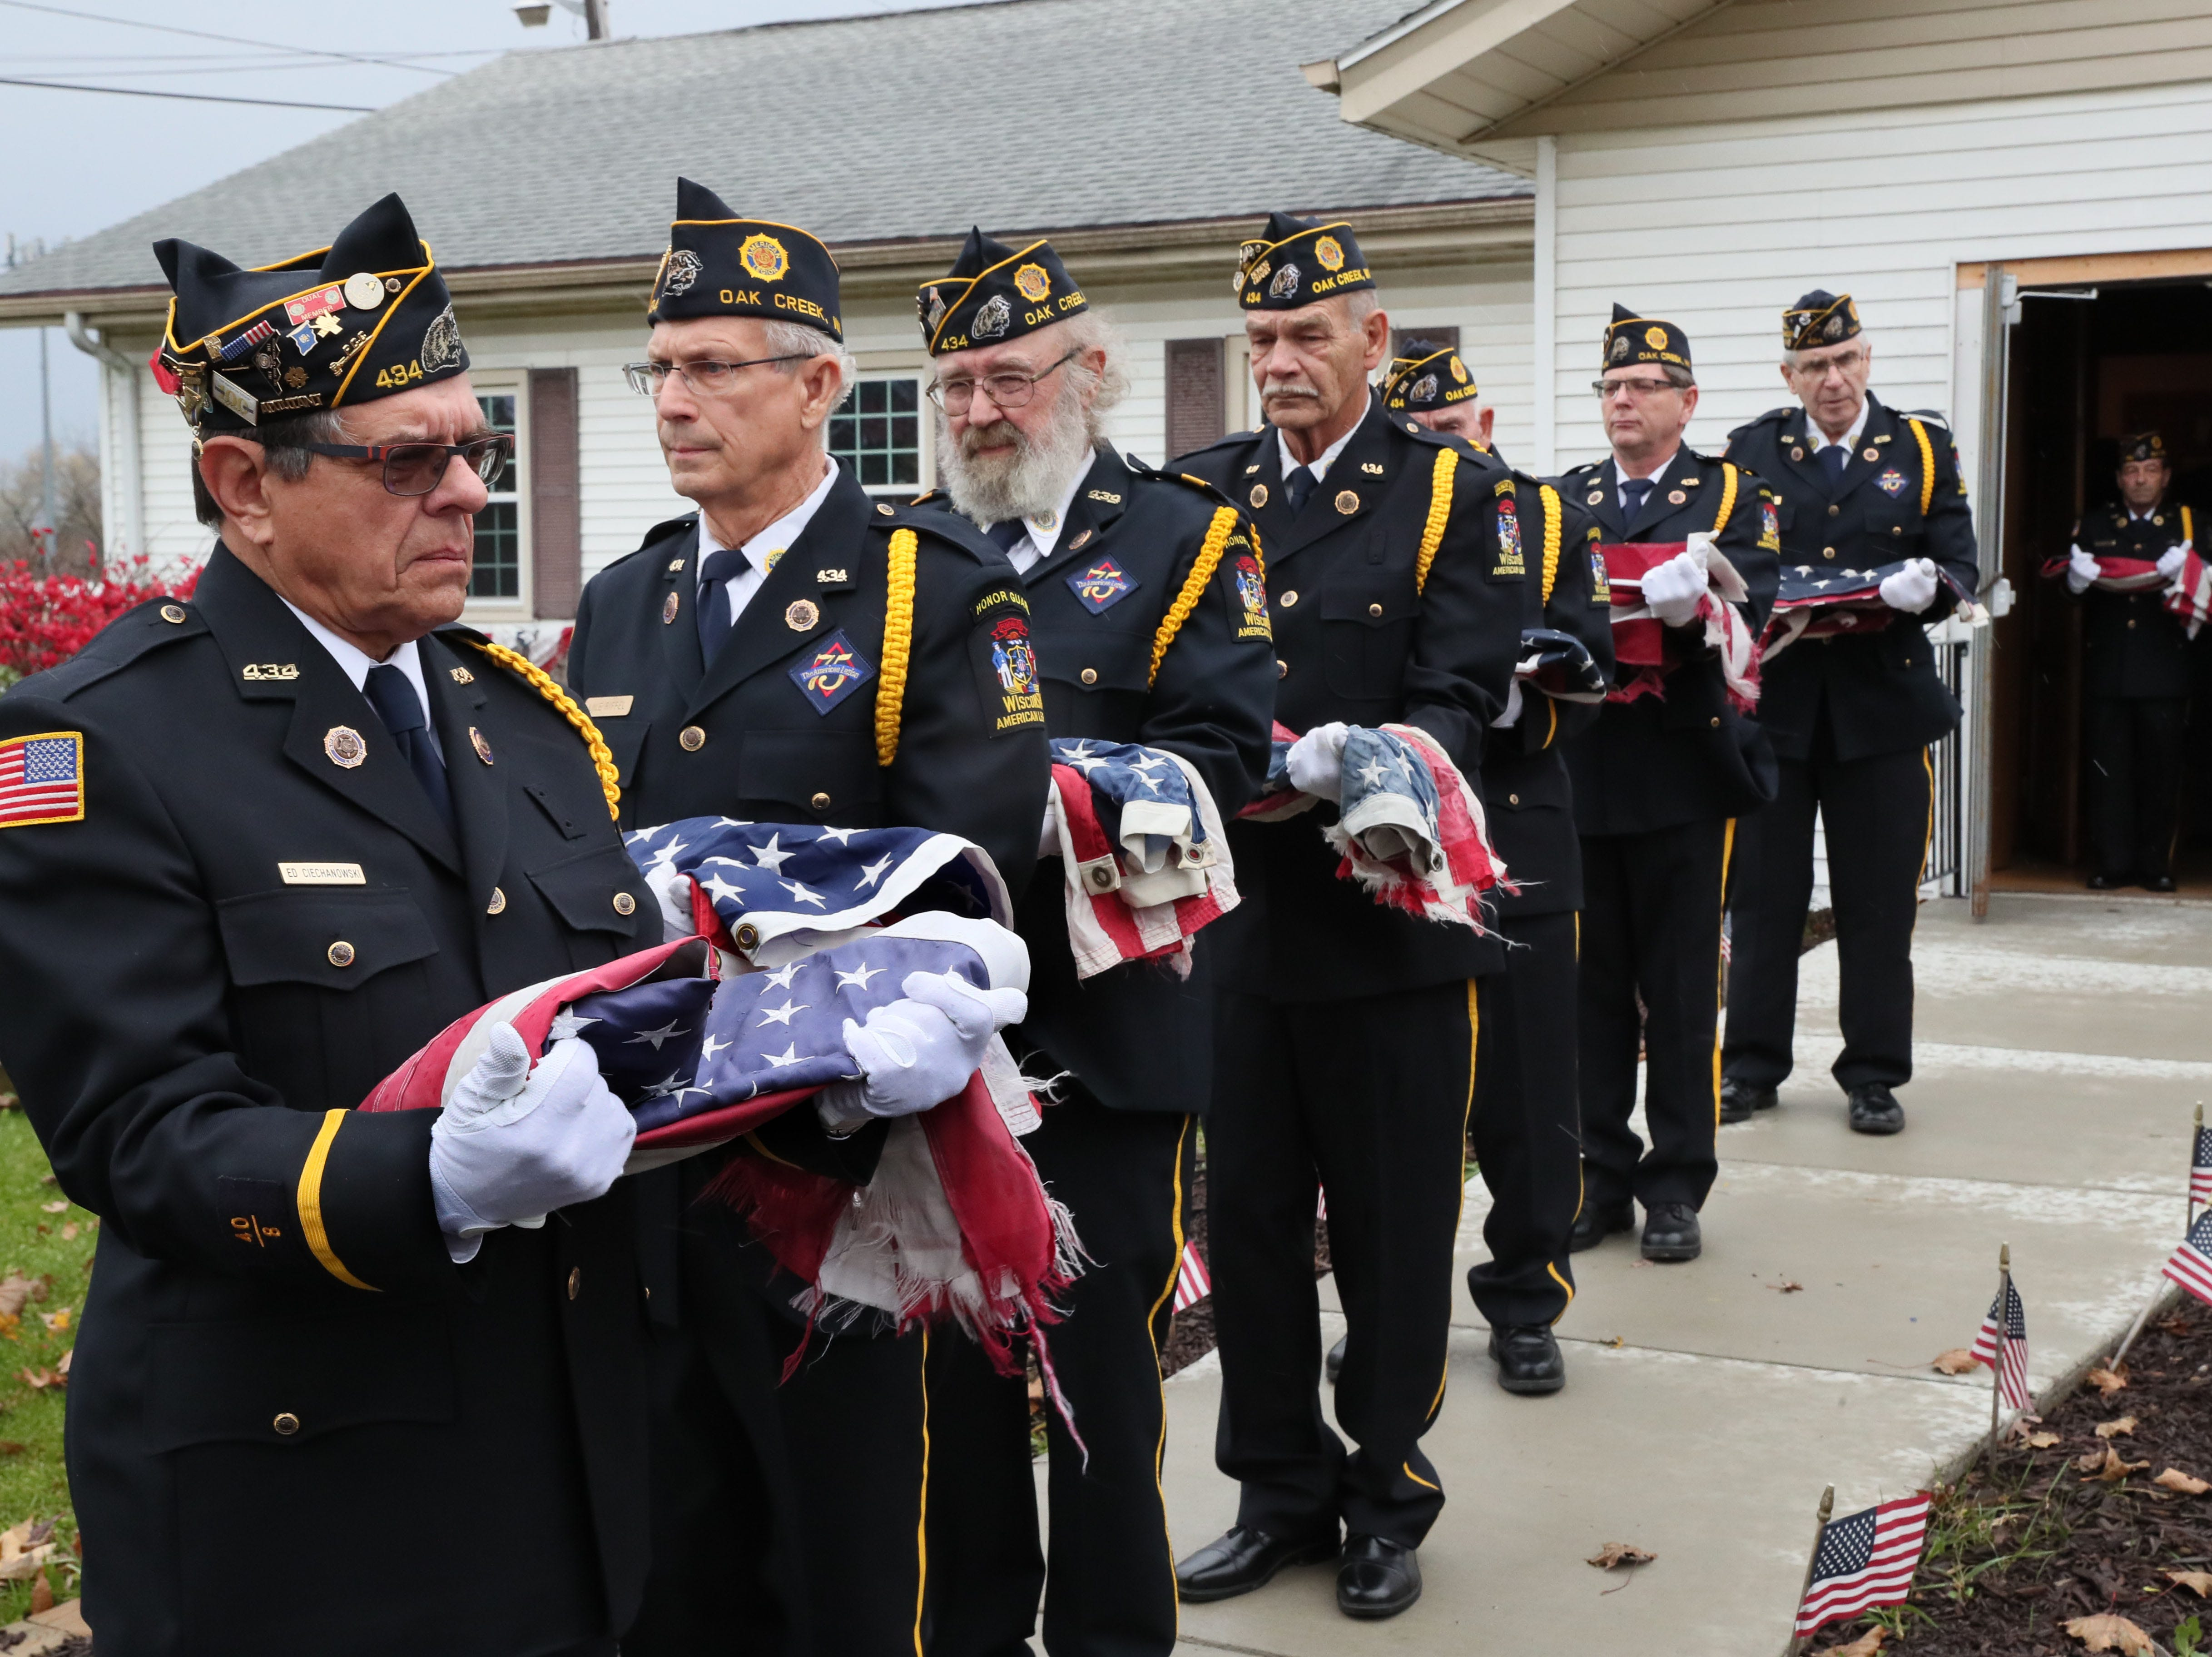 Ed Ciechanowski (far left), a member of the honor guard, holds a flag along with others as they make their way toward a fire where the flags will be destroyed.